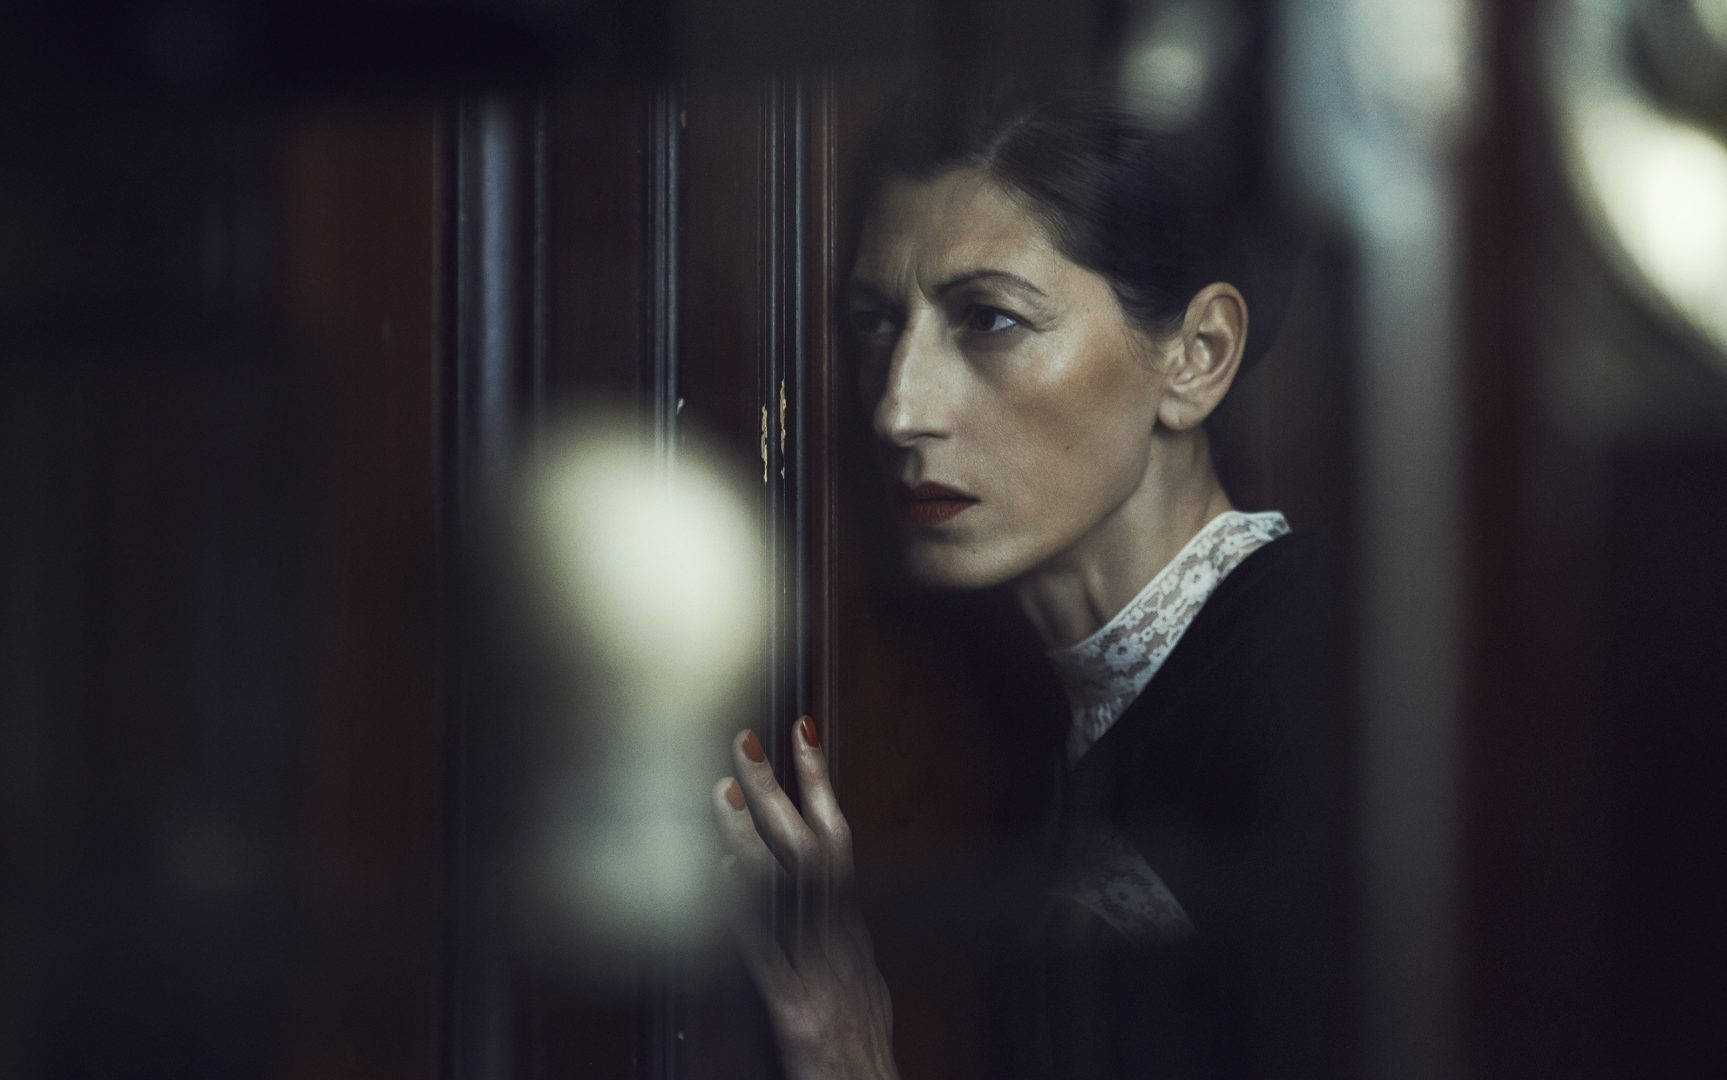 Women listen to conversation at door by Stefan Rappo